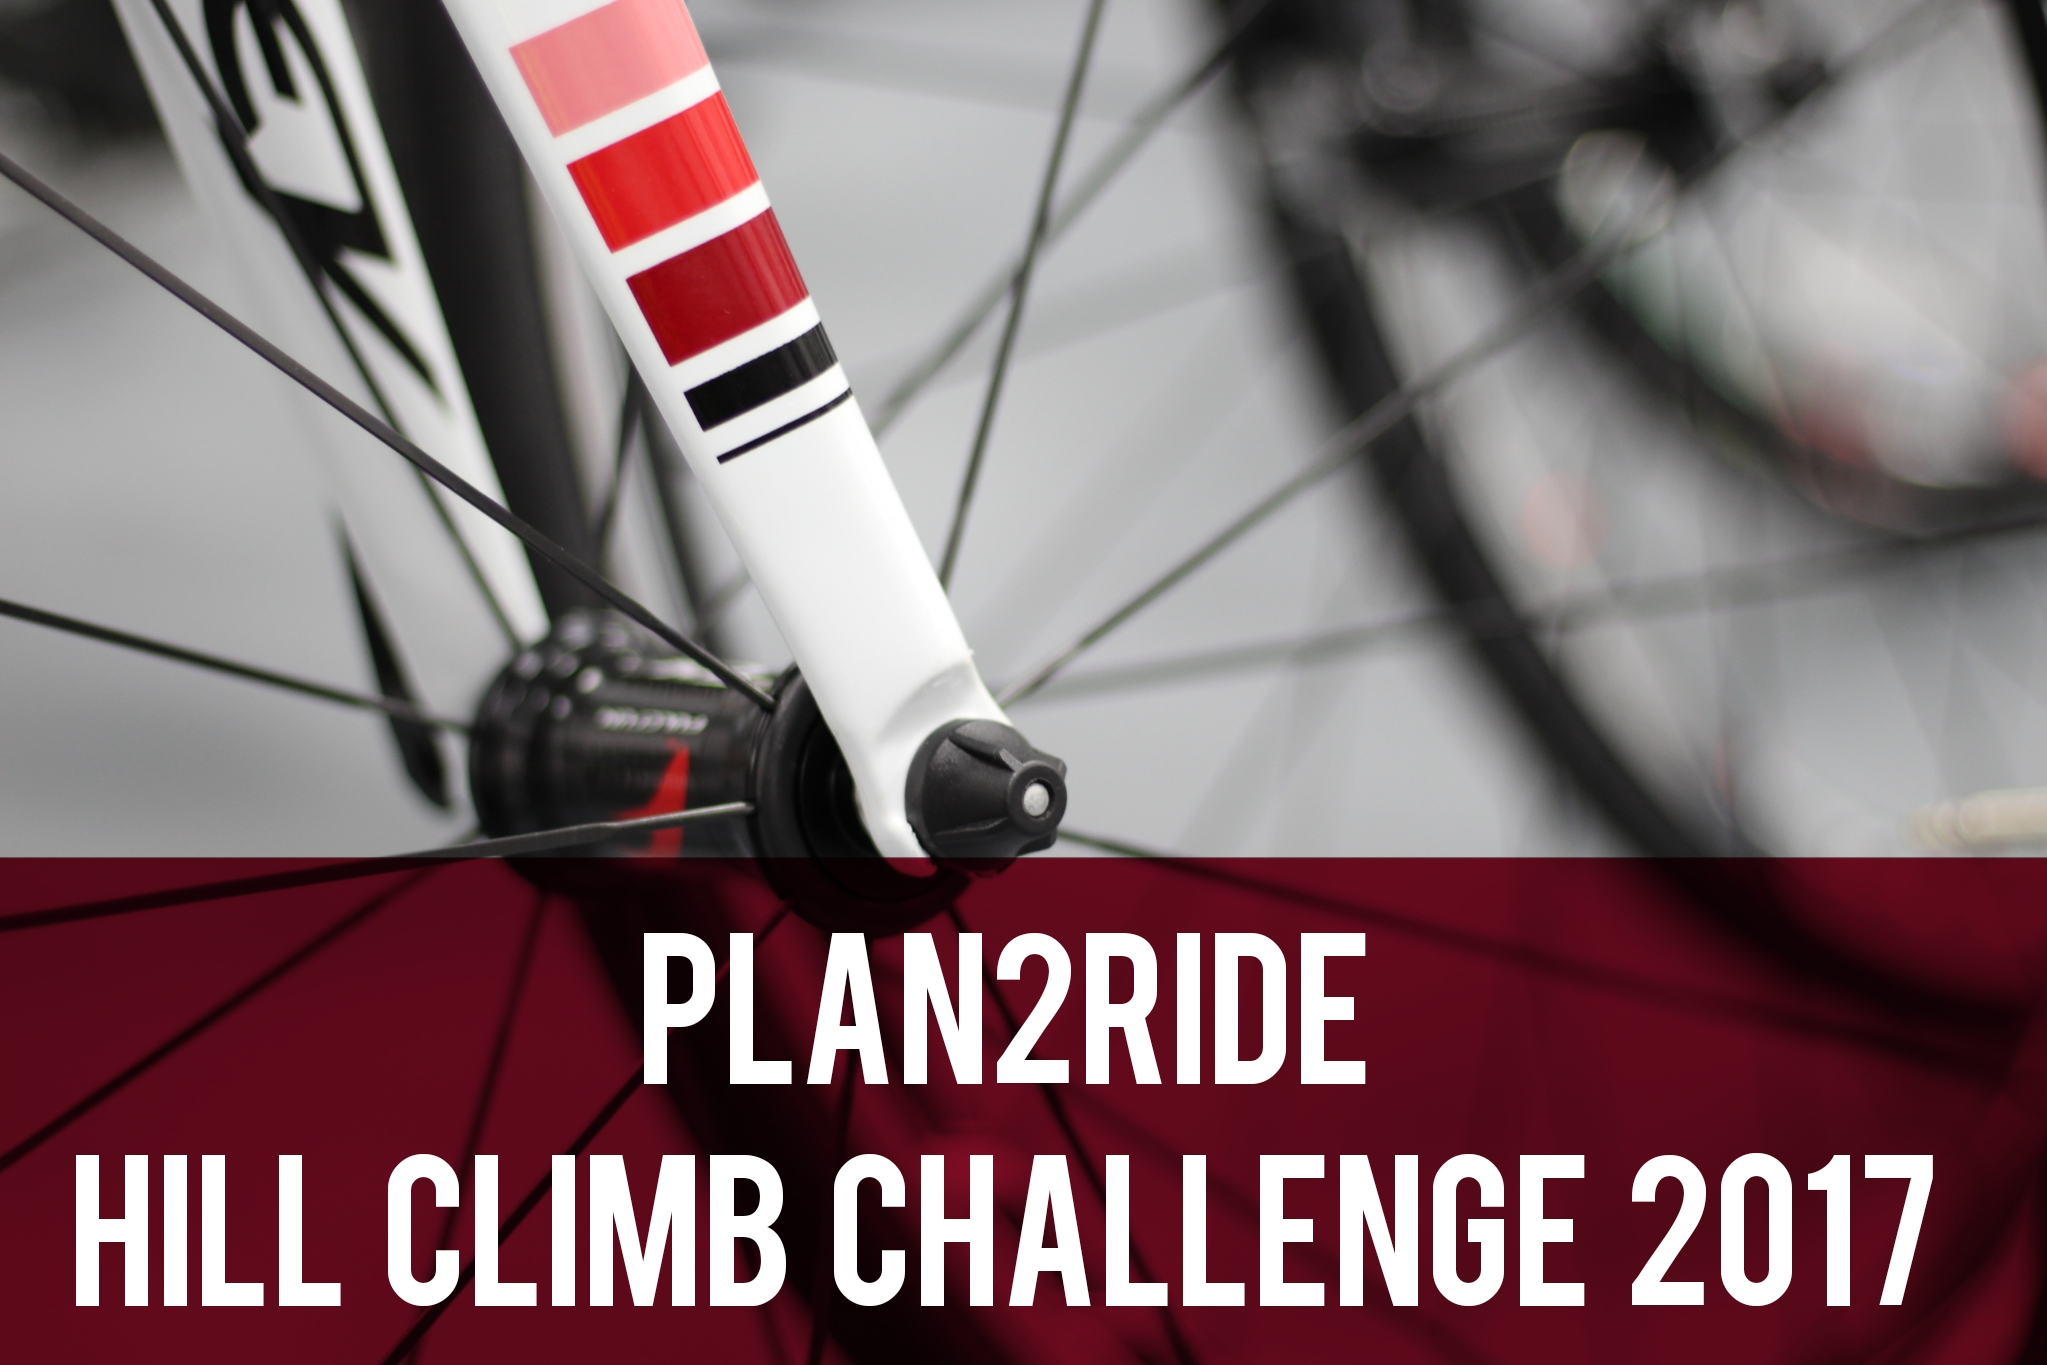 plan2ride hill climb challenge 2017 header